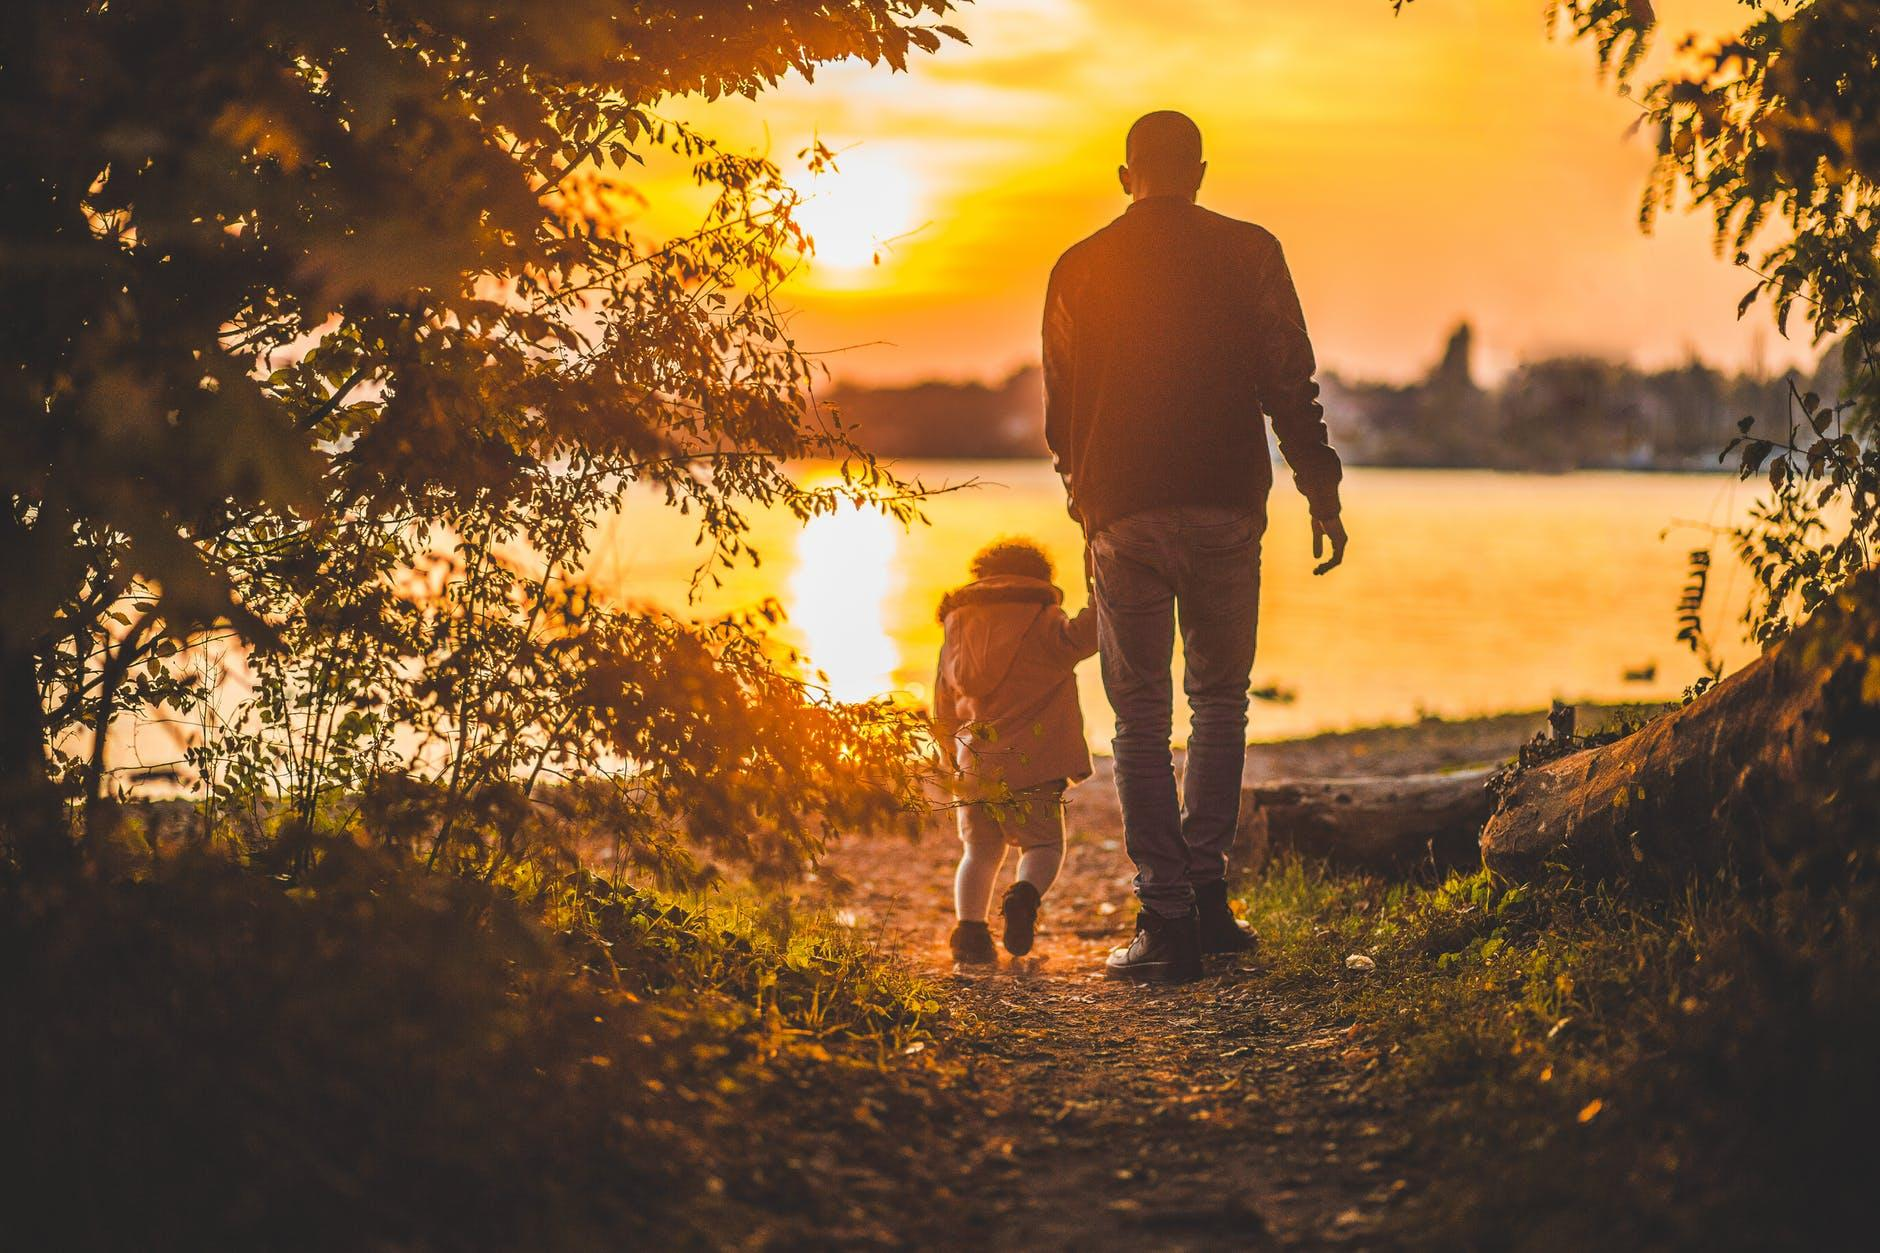 A photo of a man and a child in nature during sunset. By moving to Toronto with a family, you get to marvel at the sight of the amazing Canadian landscape.